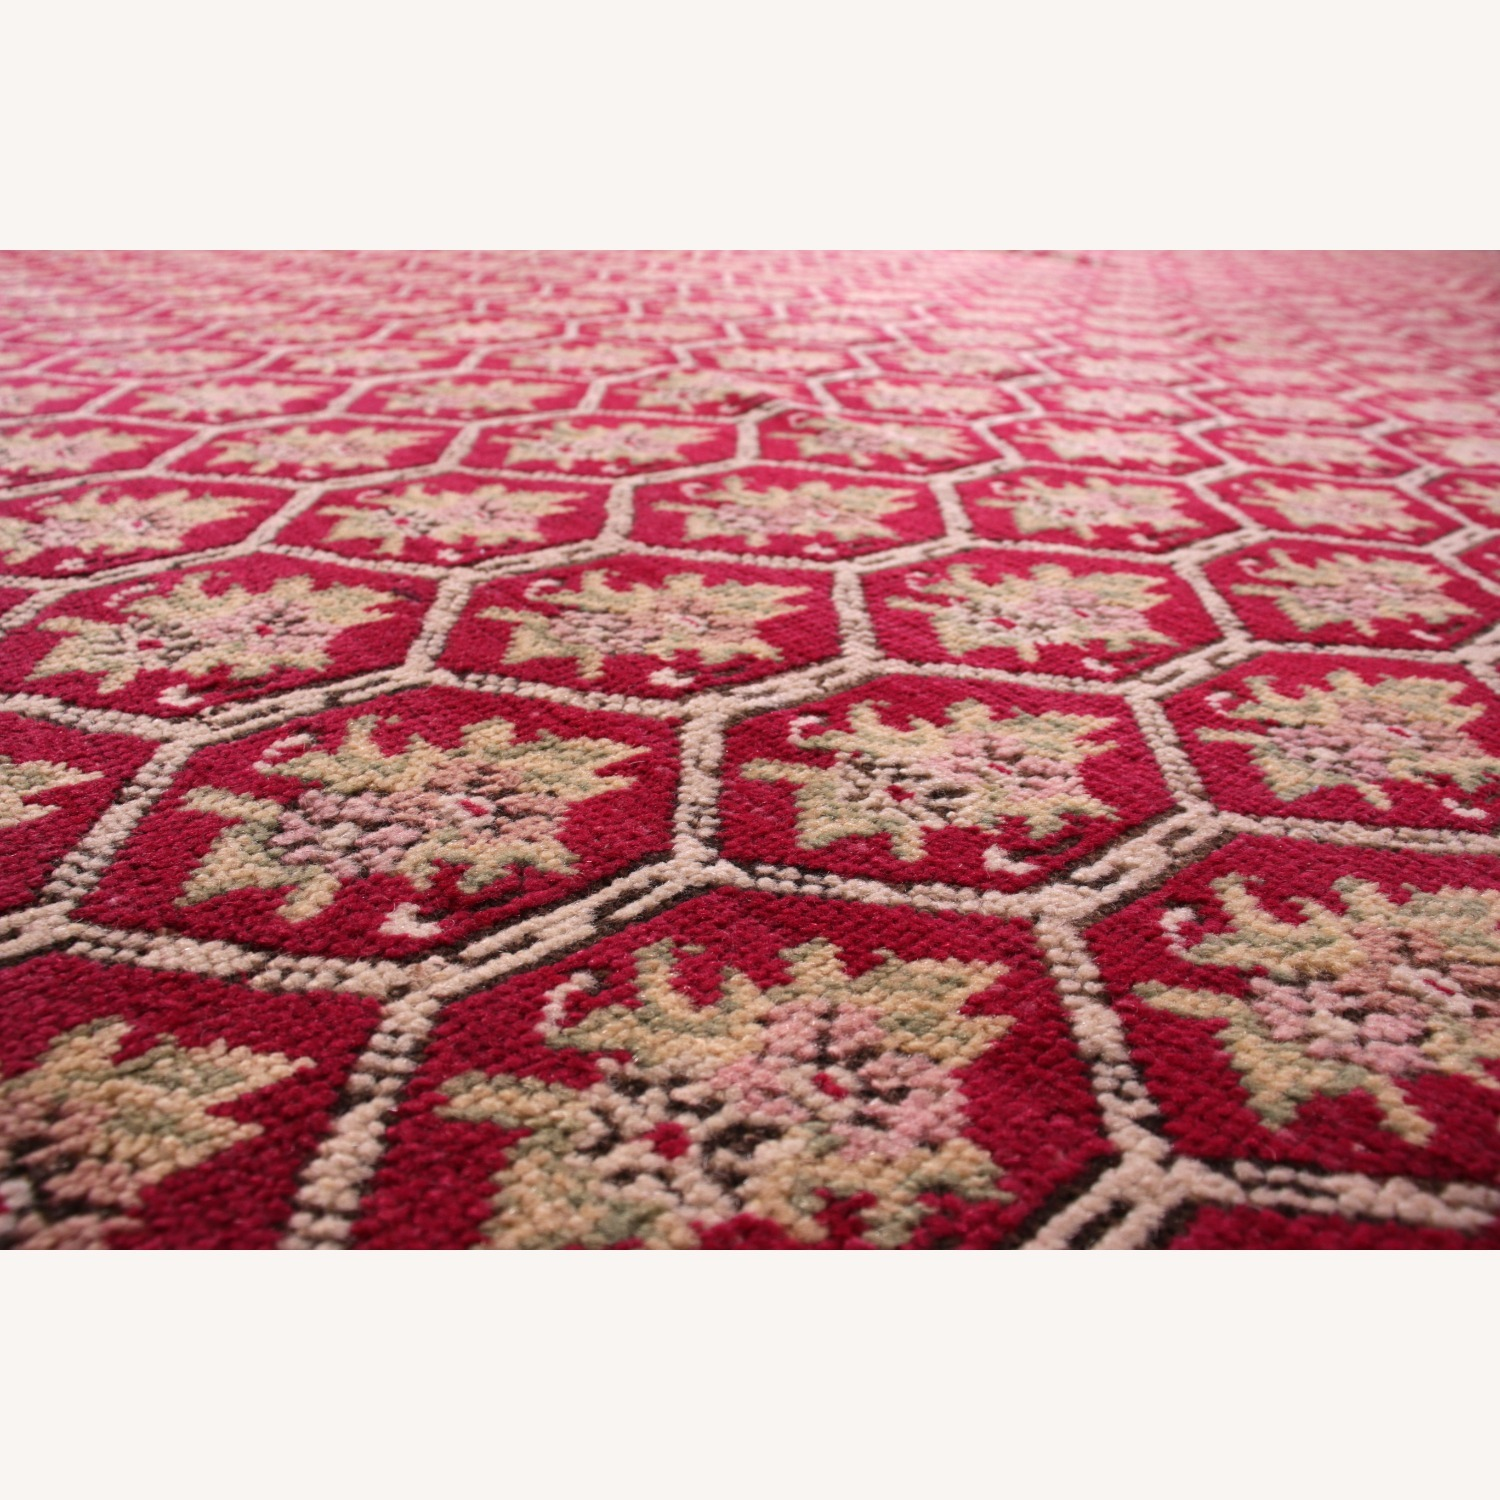 Antique Red and Pink Floral Rug - image-4